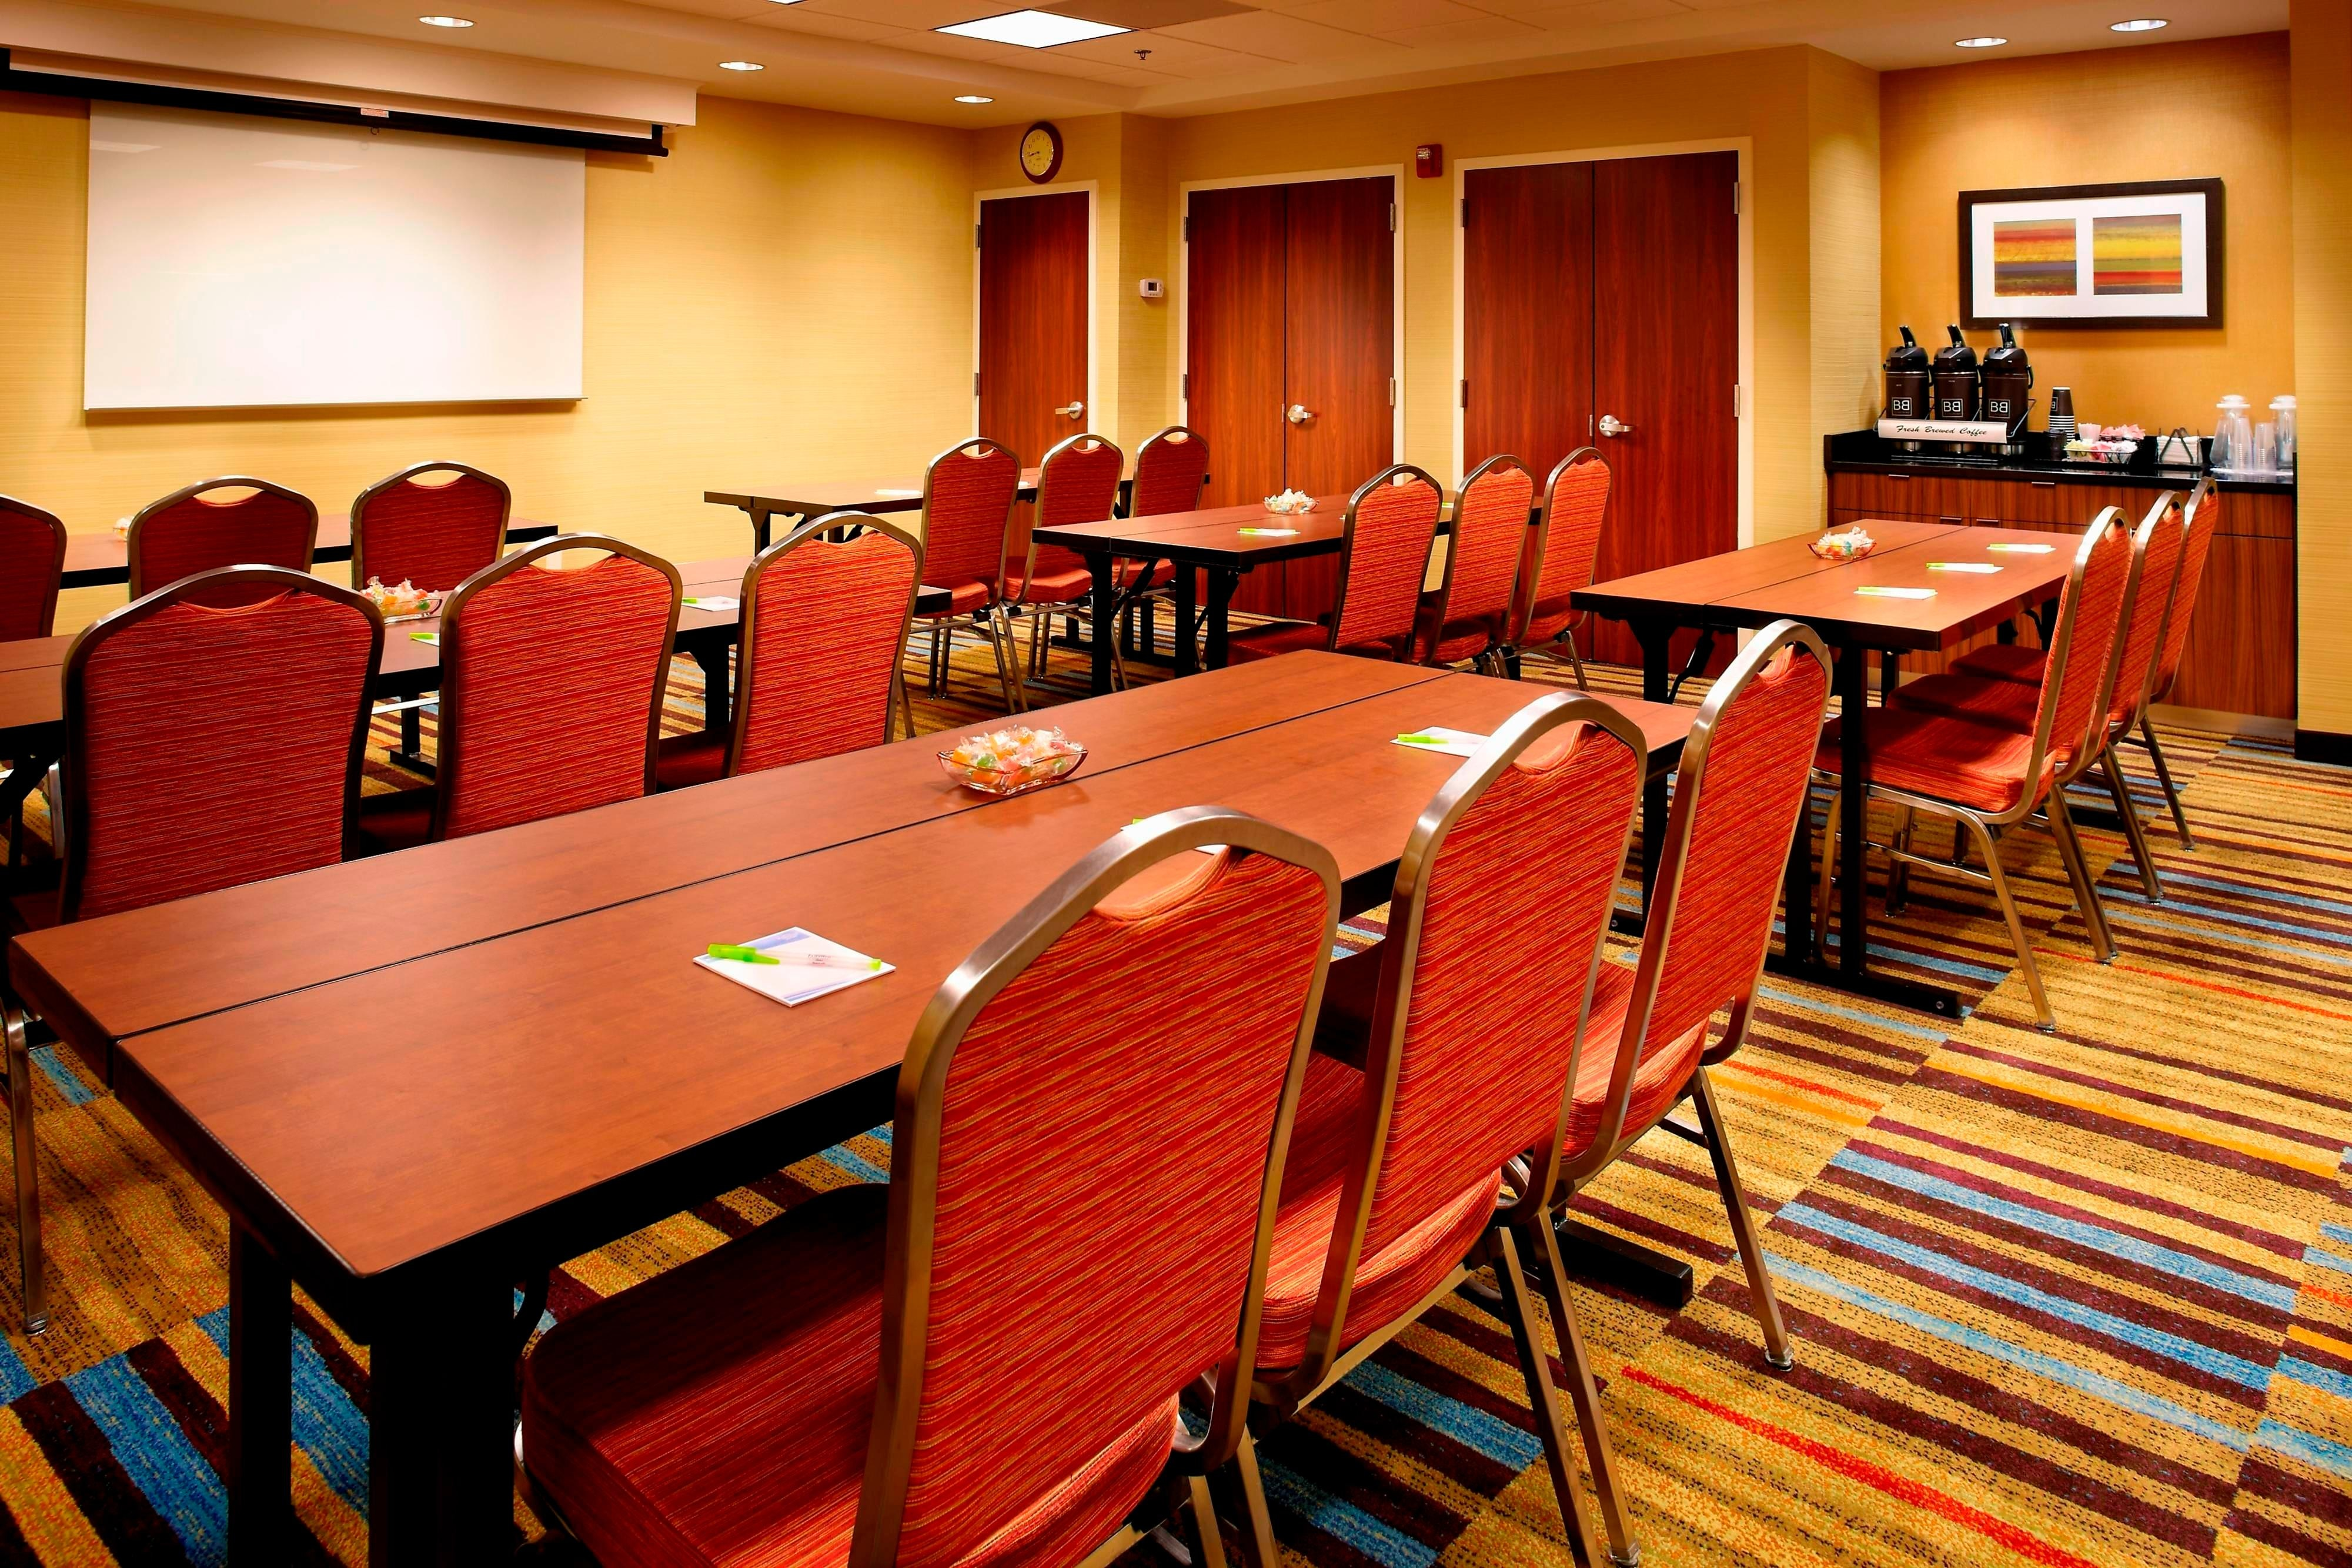 Hotel Meeting Room Classroom Style